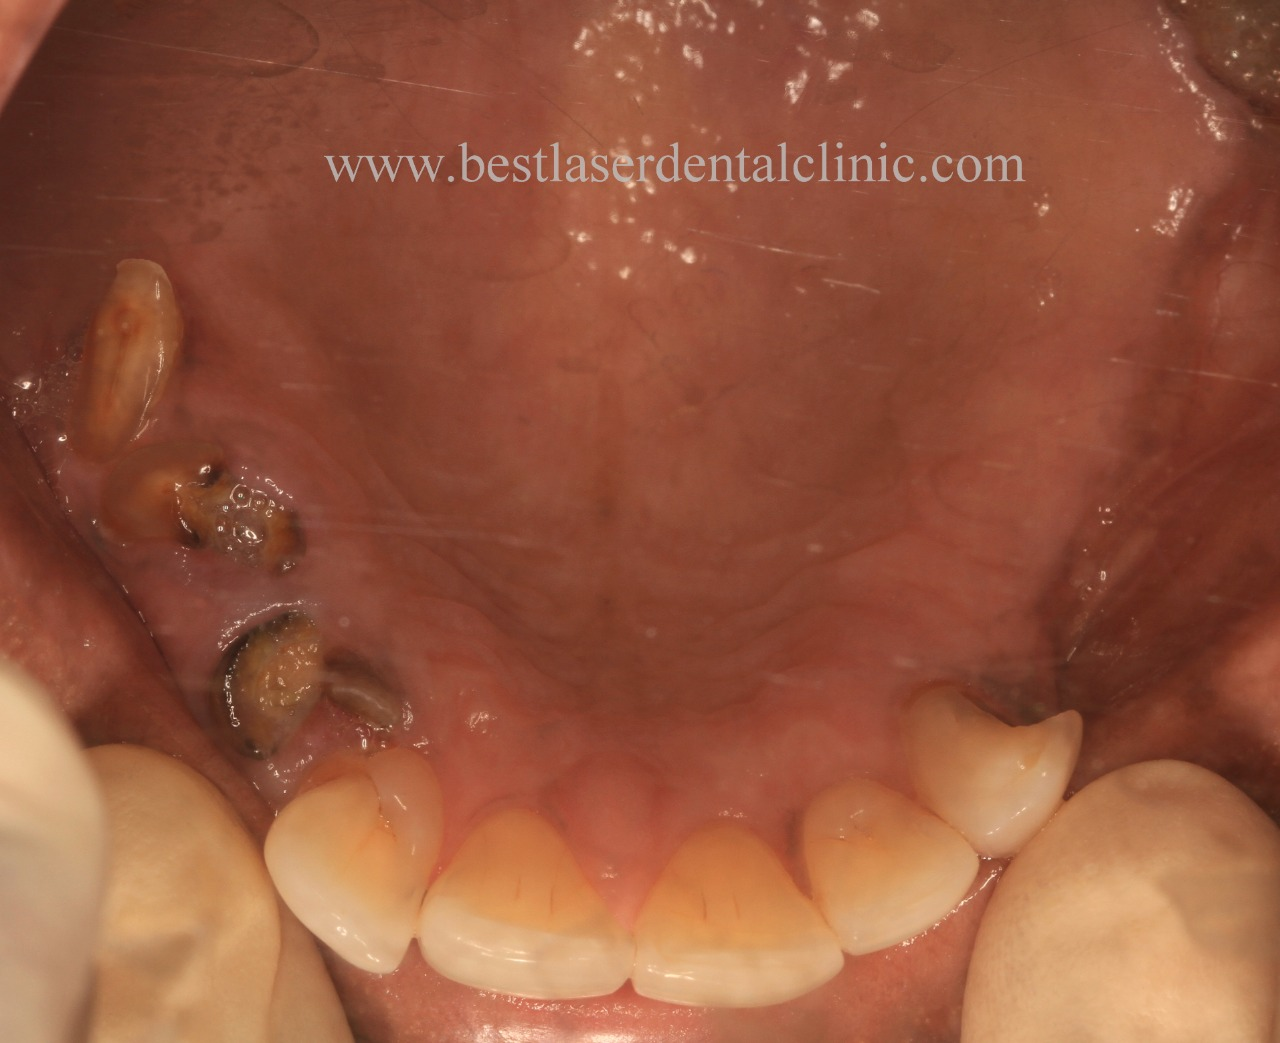 full teeth implant cost in Chennai, India